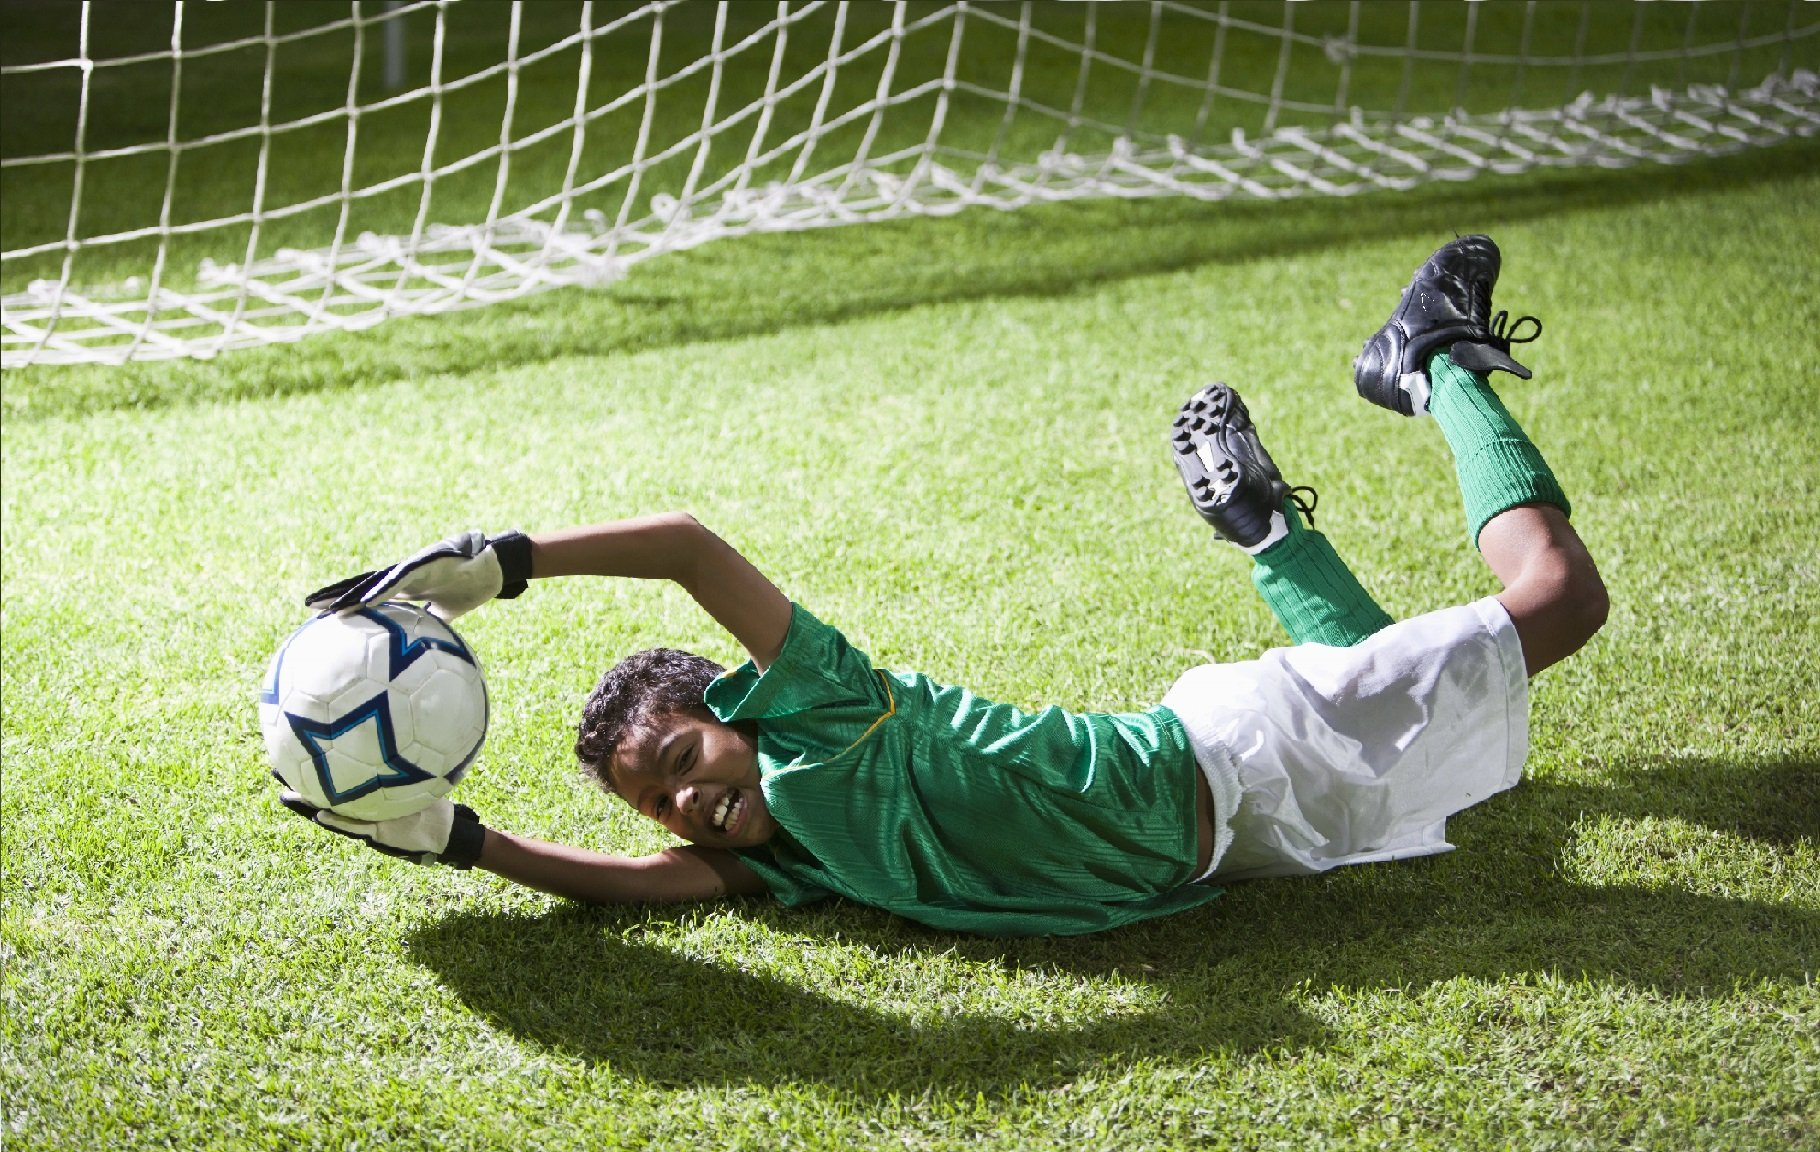 Young boy with supplemental accident insurance in green shirt wearing white gloves diving in front of soccer cage